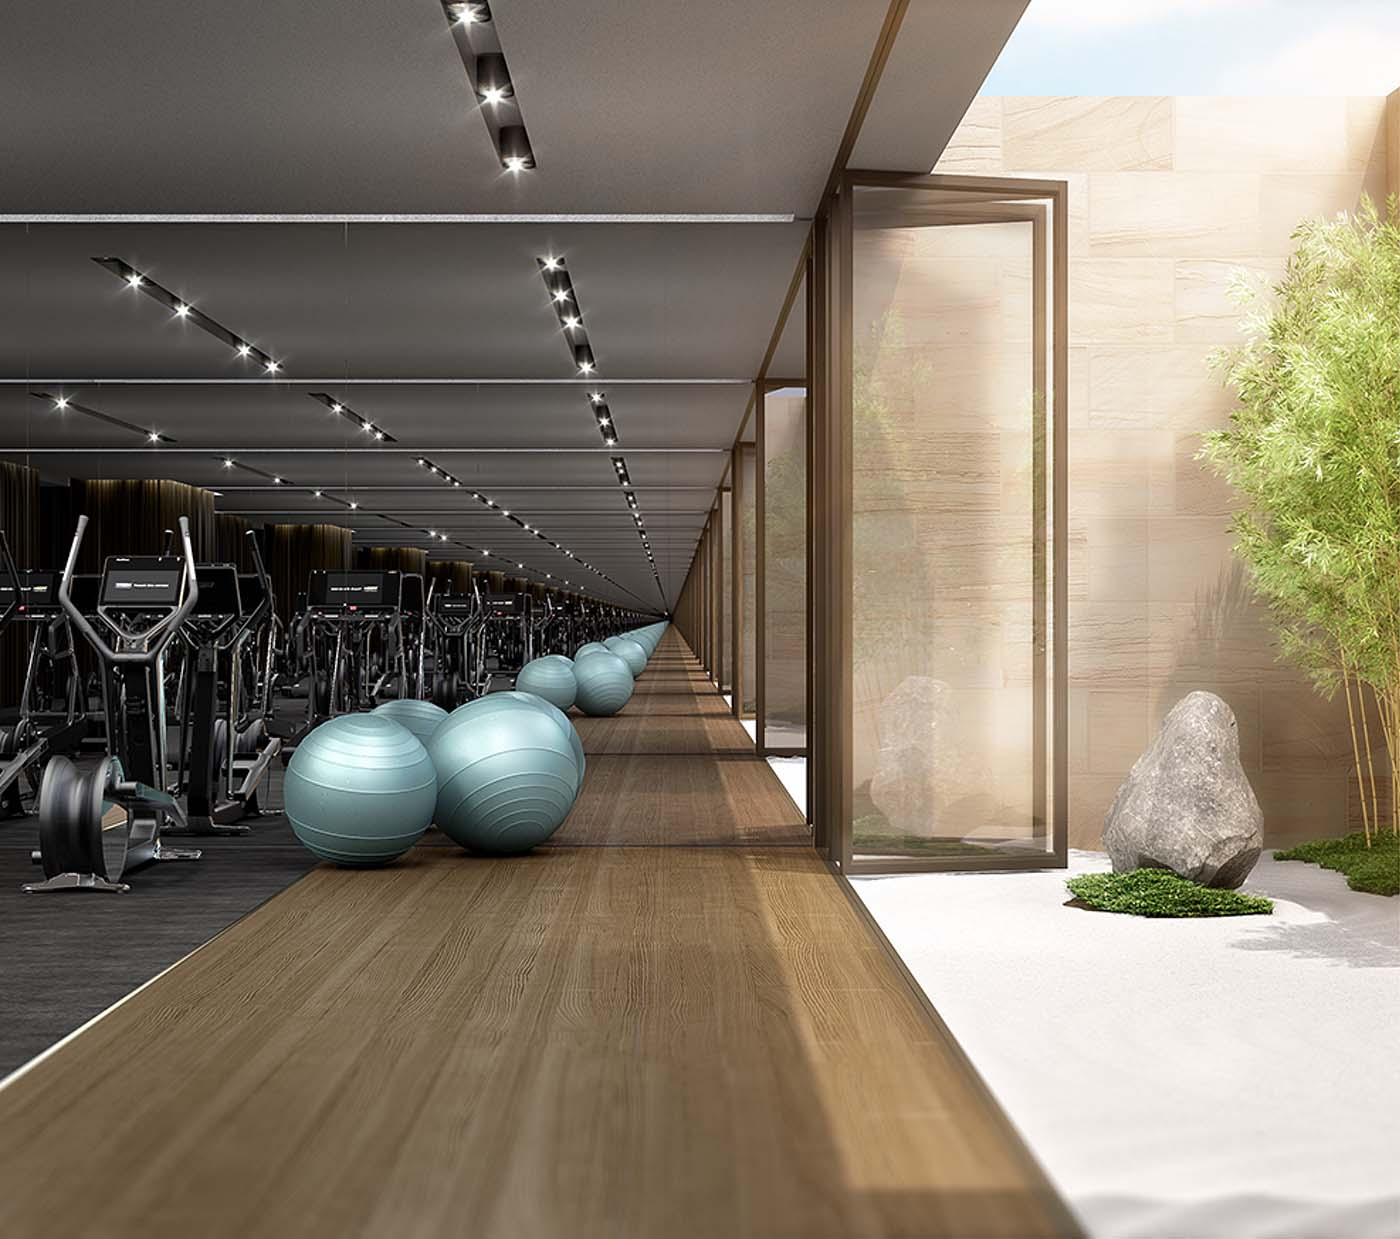 Gym area in a skyscraper showing exercise balls and fitness machines.